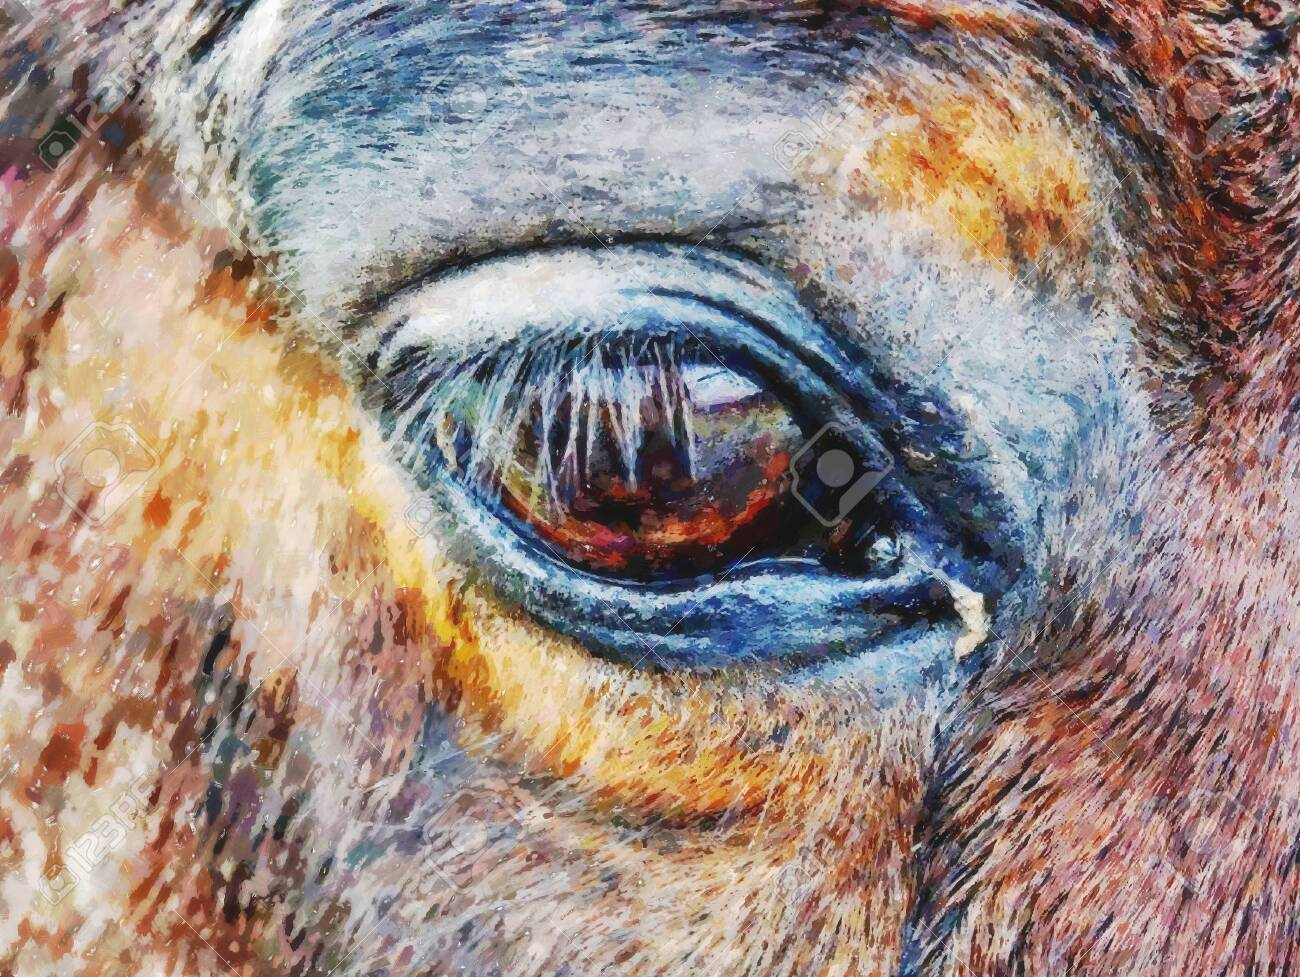 Effect Watercolor Paint Light Brown Horse Head With Dark Eye Stock Photo Picture And Royalty Free Image Image 123551227